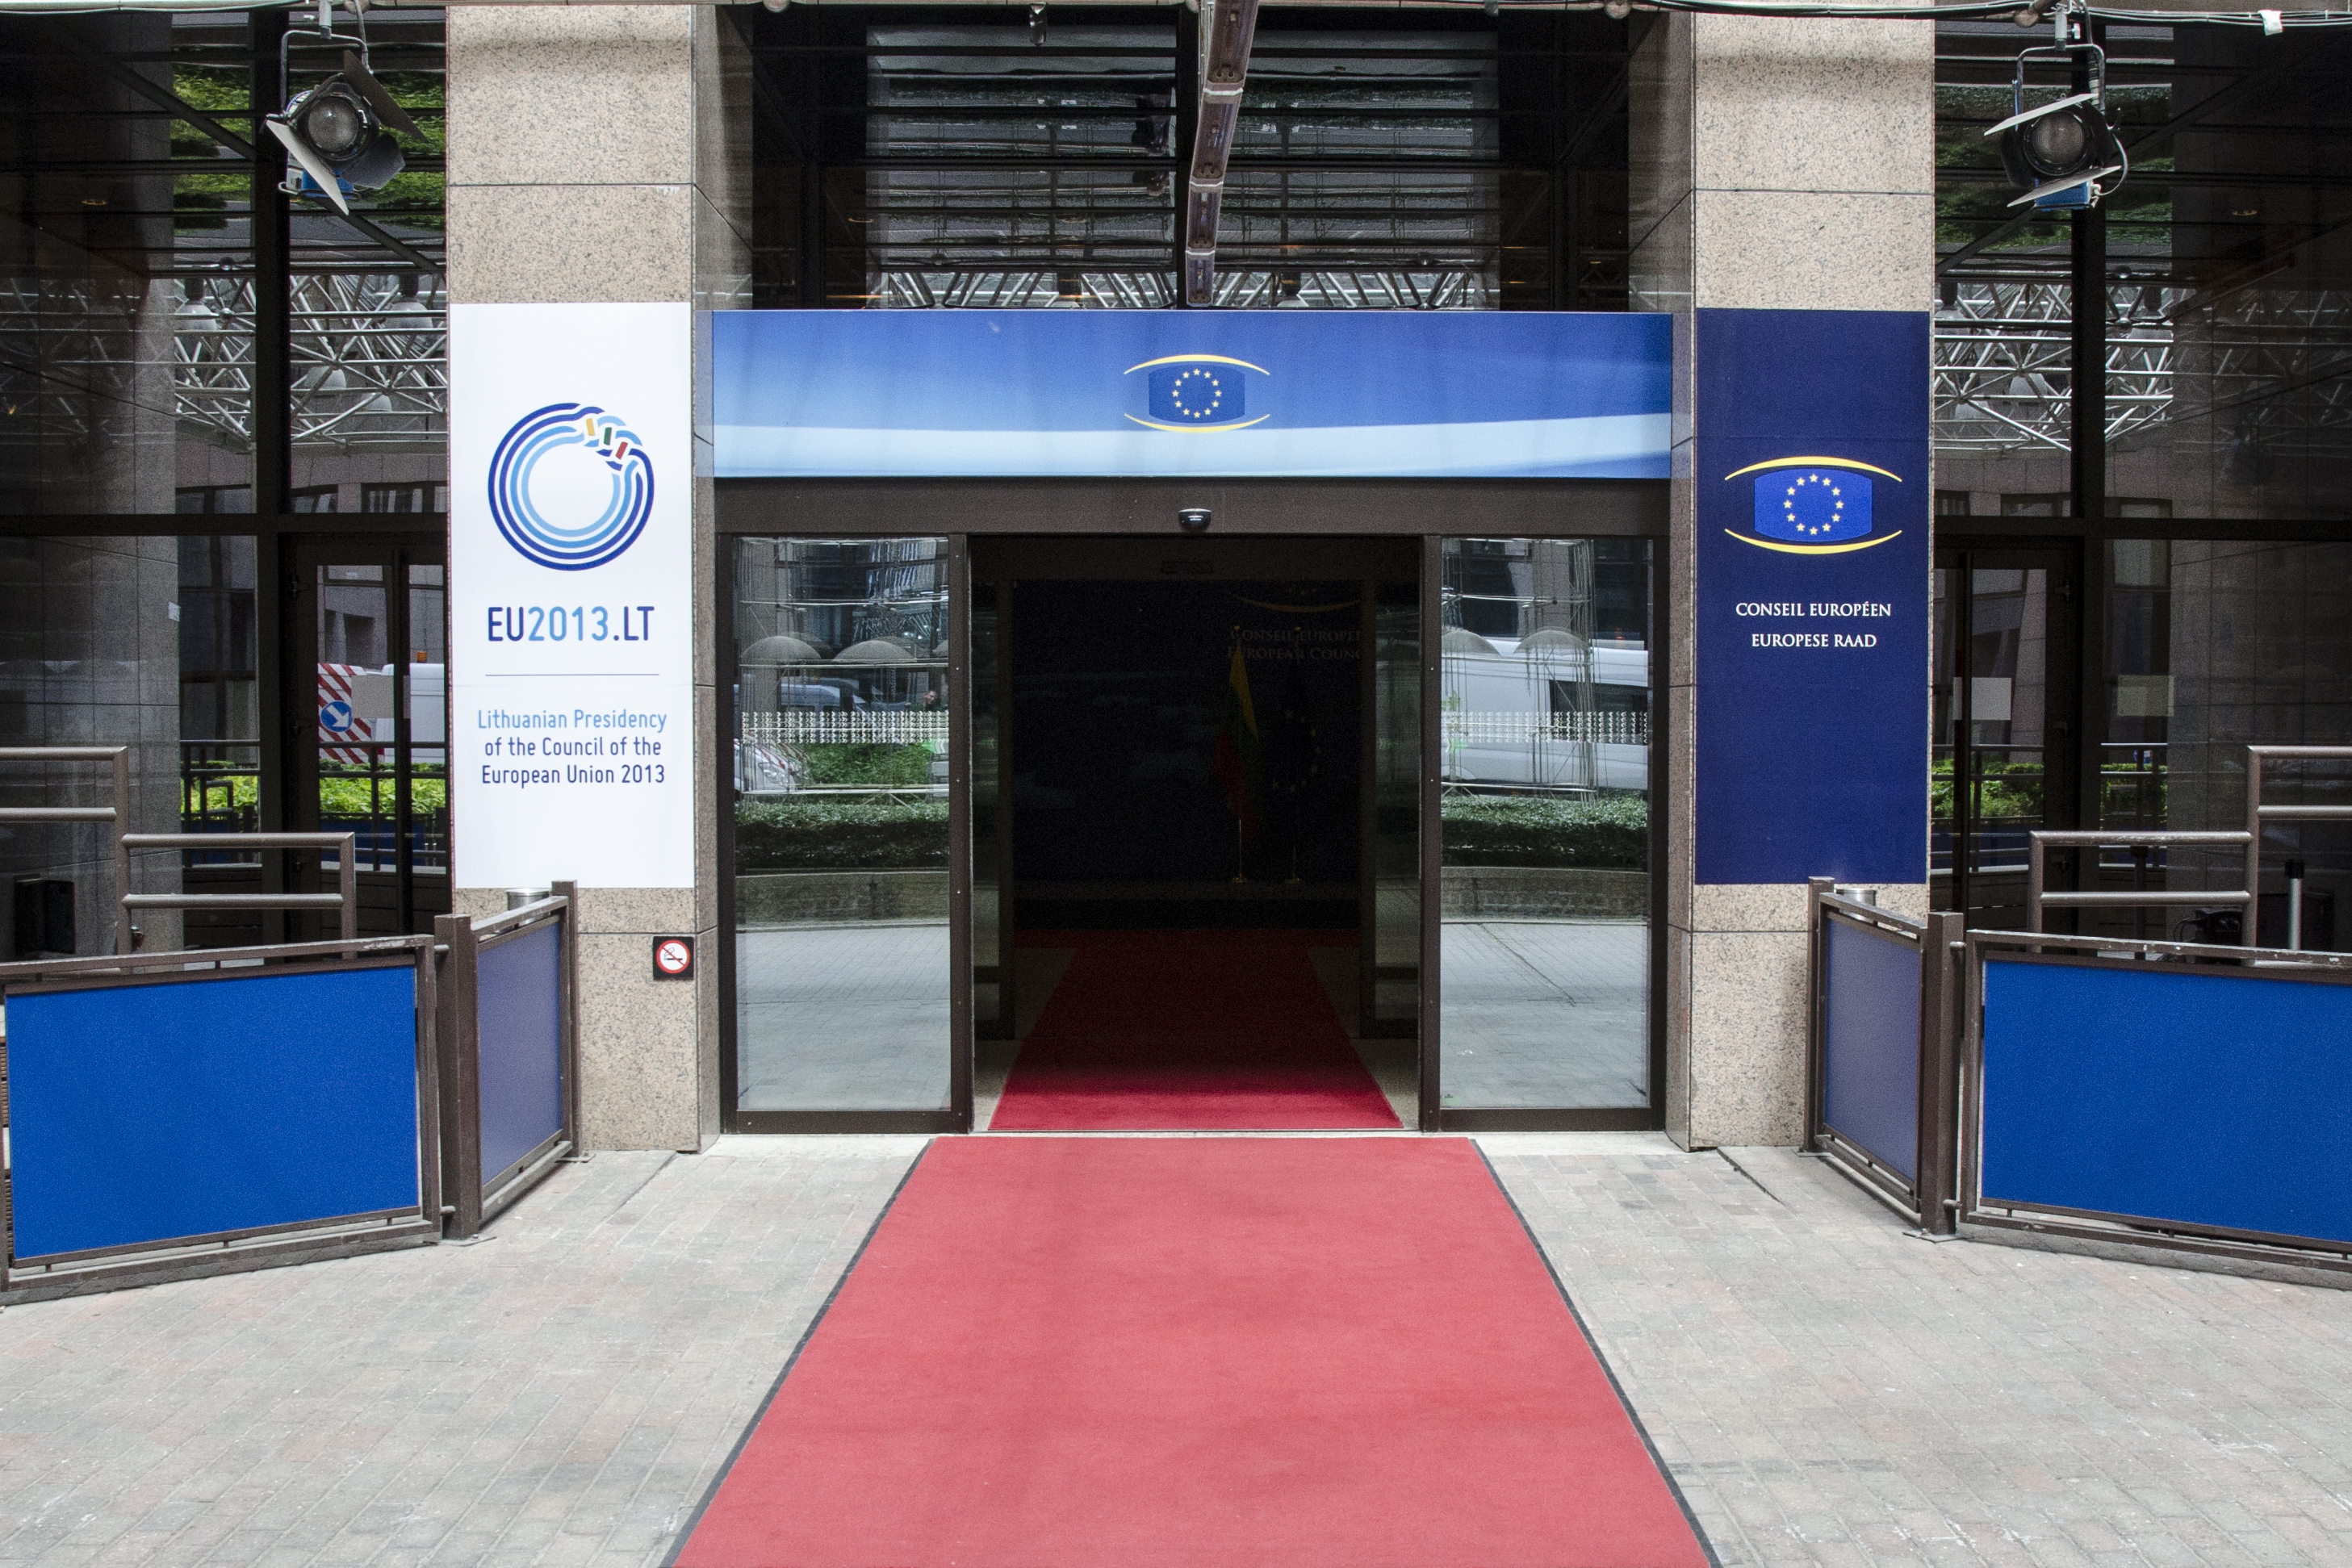 Entrance to the EU Council in Brussels